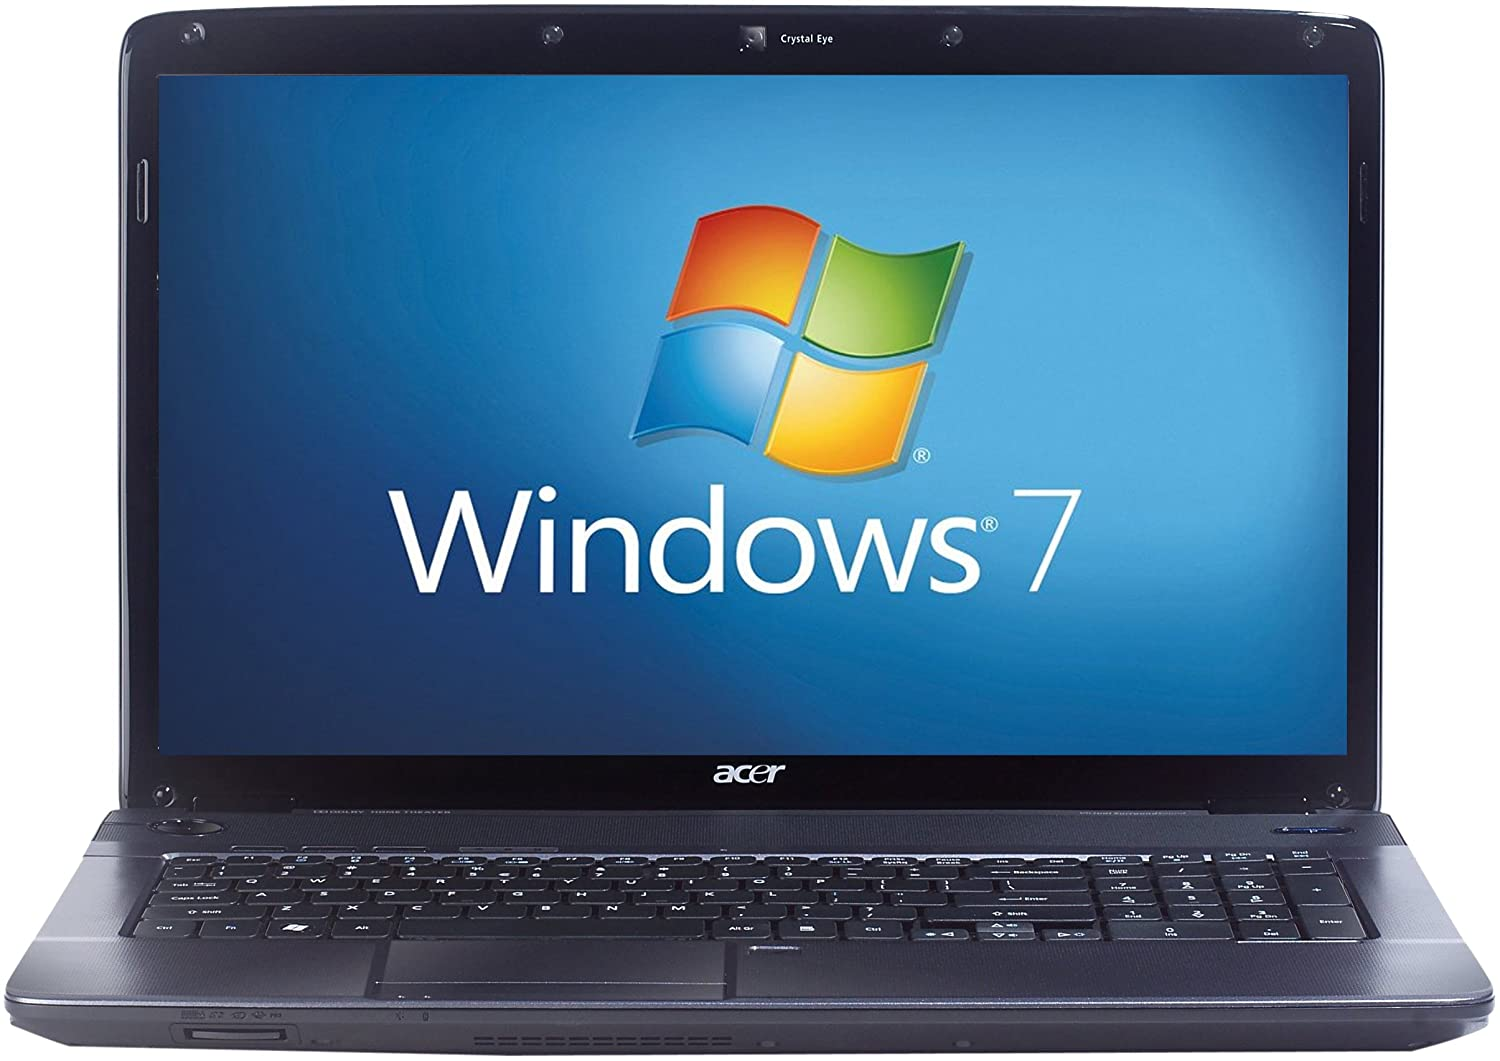 ACER ASPIRE 7740 NOTEBOOK INTEL WLAN DRIVERS FOR WINDOWS MAC